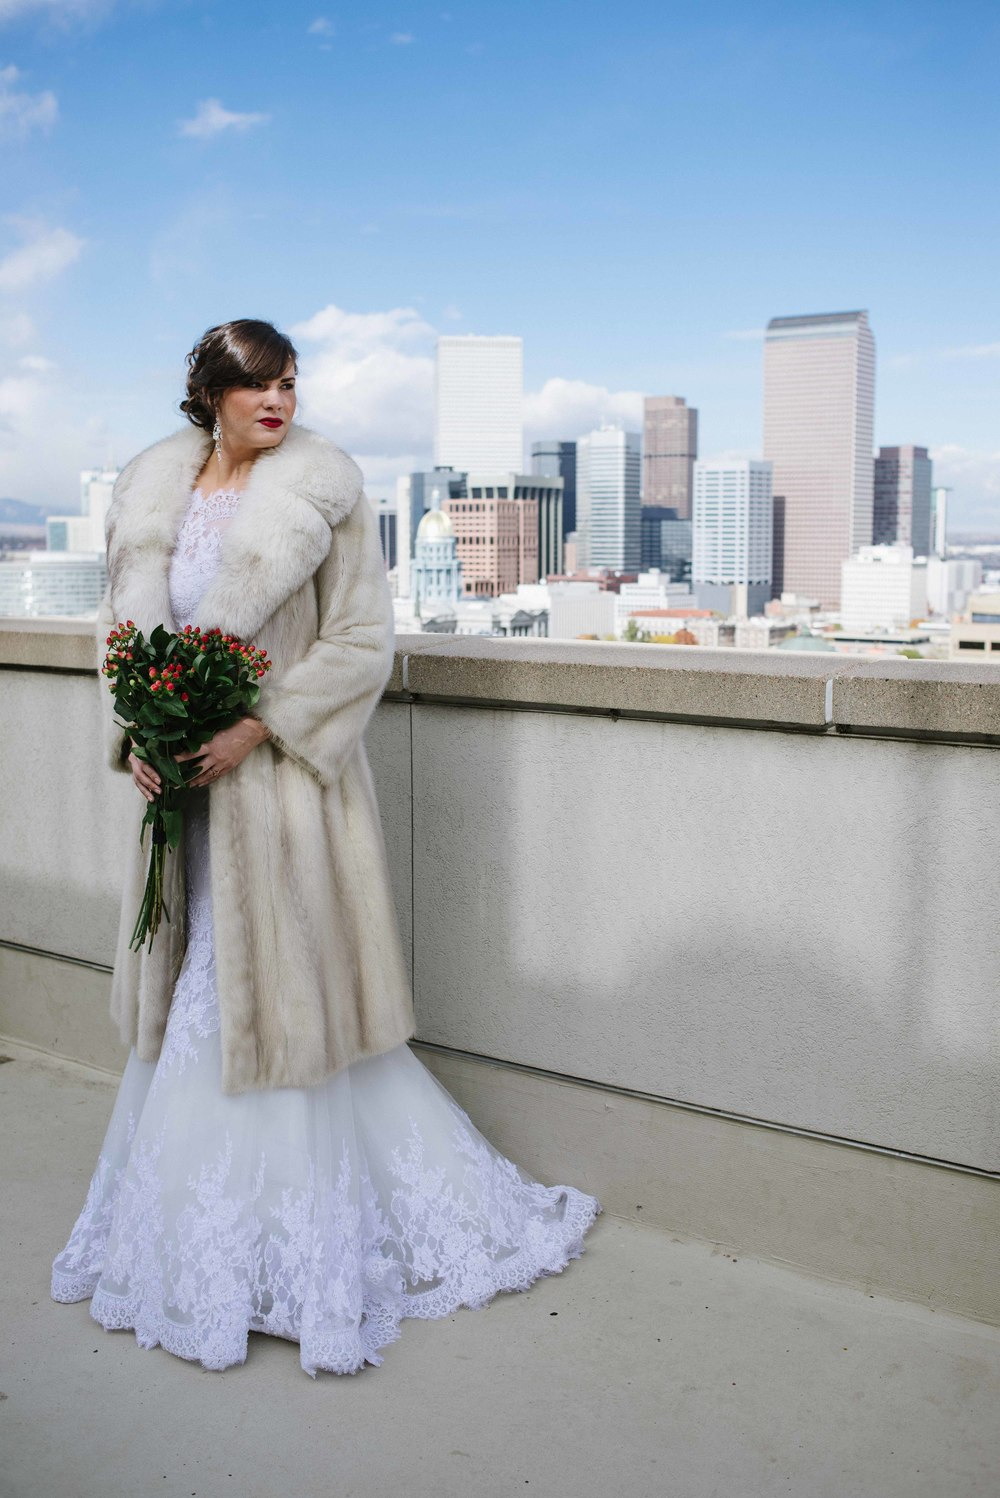 Winter Wedding | Vintage Bridal Fur from Little White Dress Bridal Shop